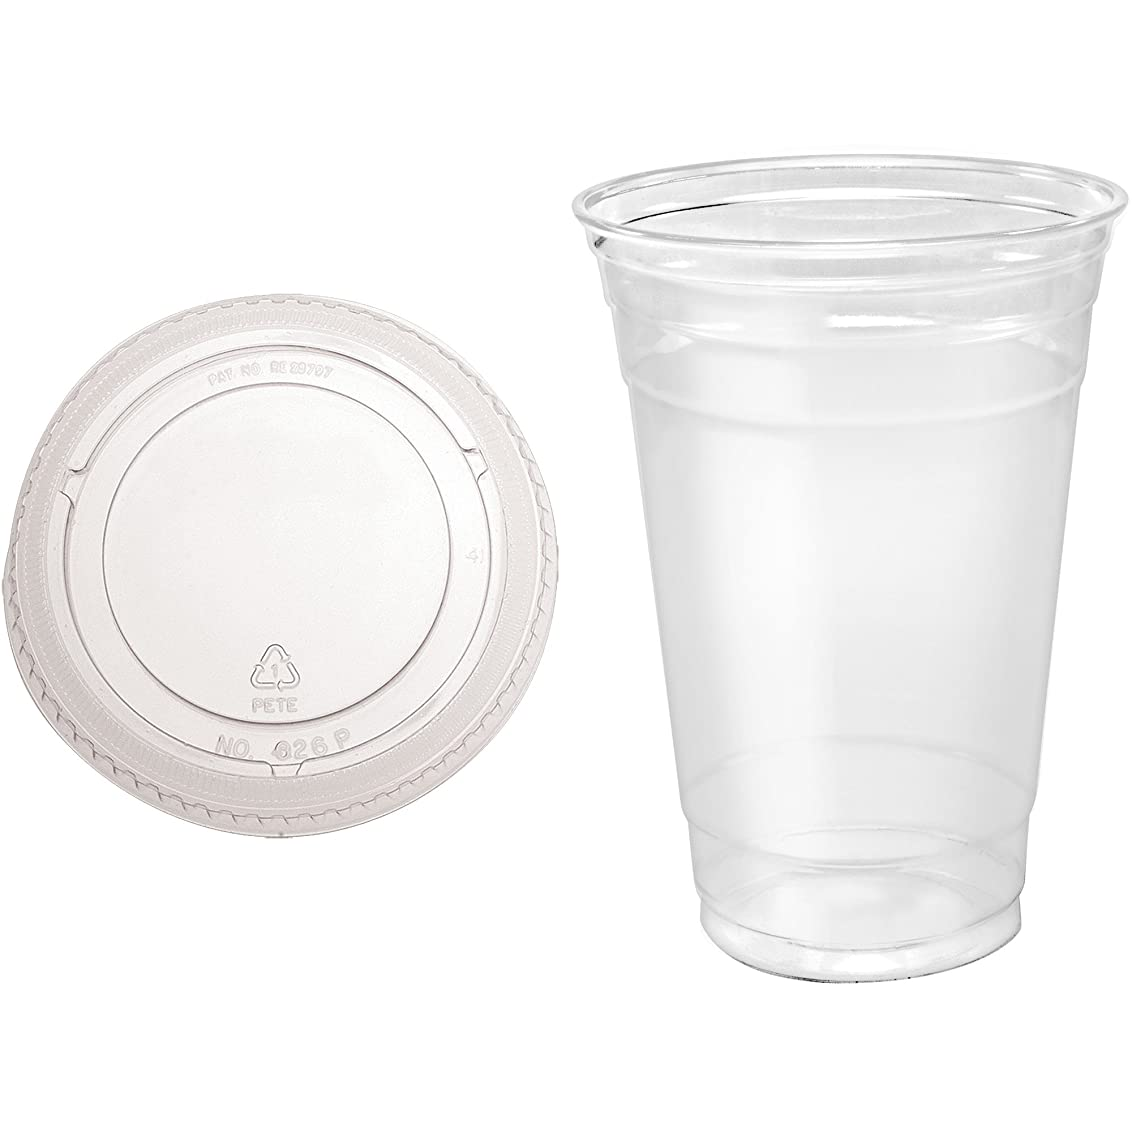 蒸発する予算ガウン(20) - 50 Sets 590ml Plastic CLEAR Cups with Flat Lids for Iced Coffee Bubble Boba Tea Smoothie